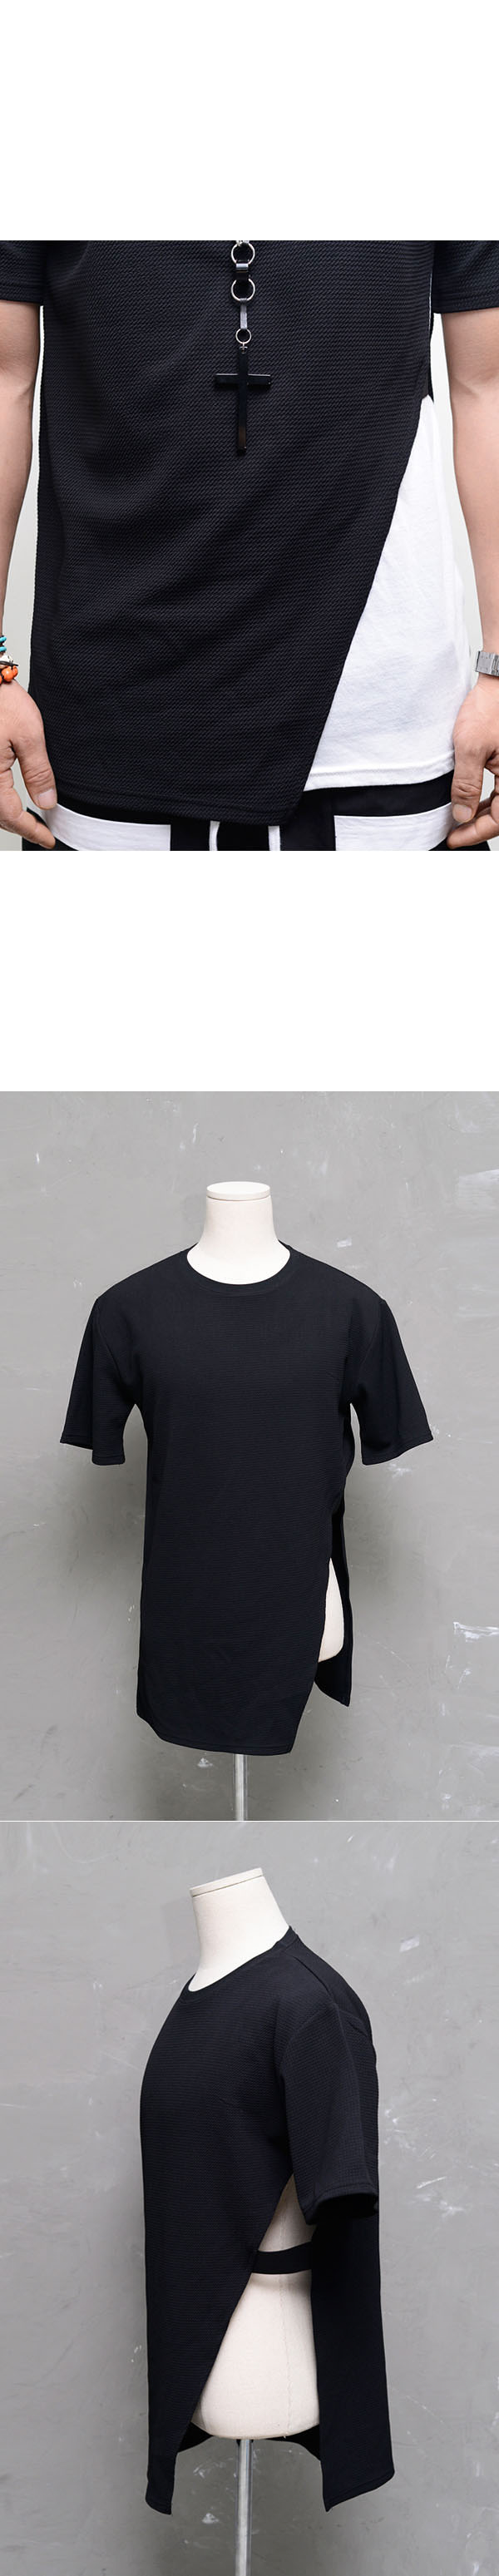 how to cut a band tee